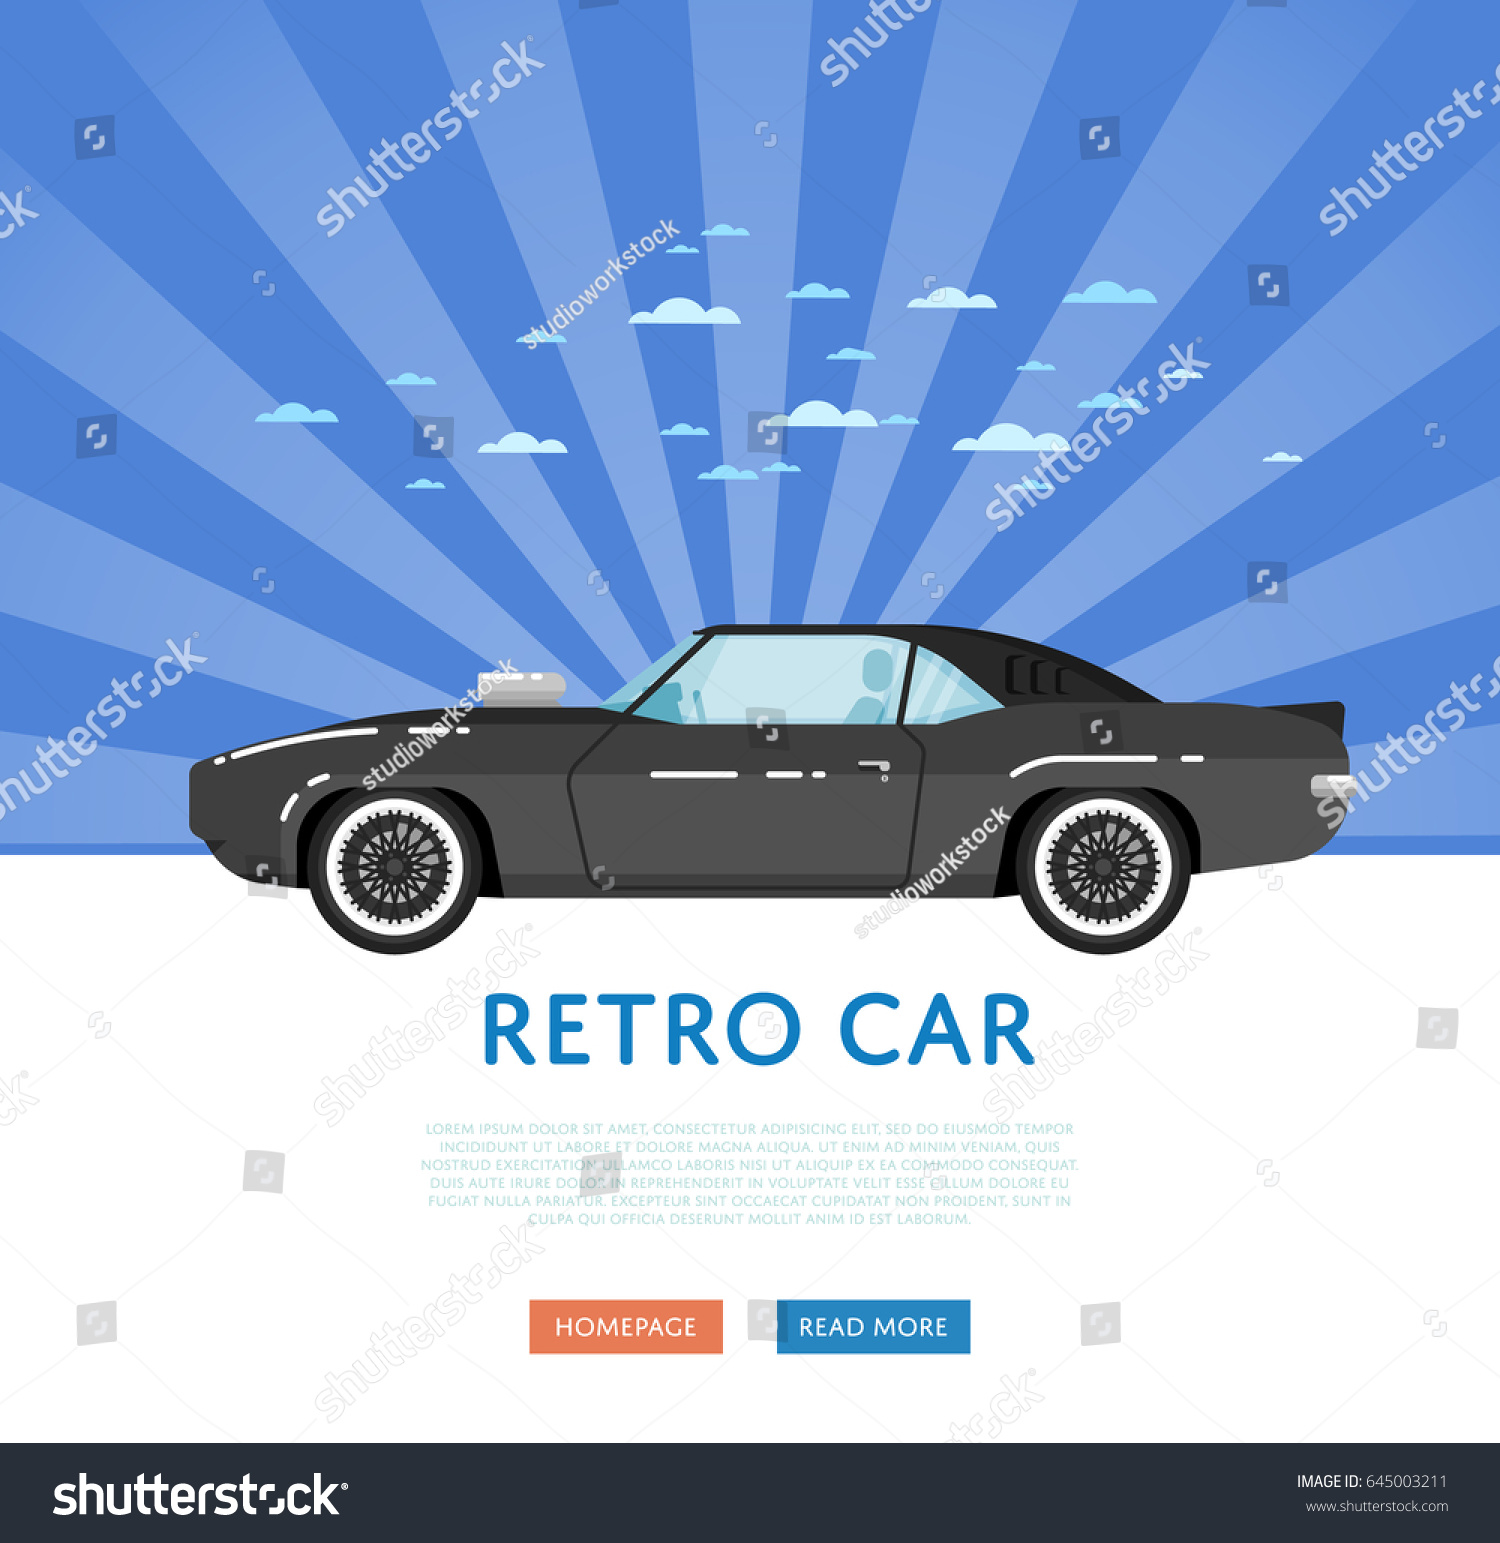 Best Website For Old School Cars To Buy